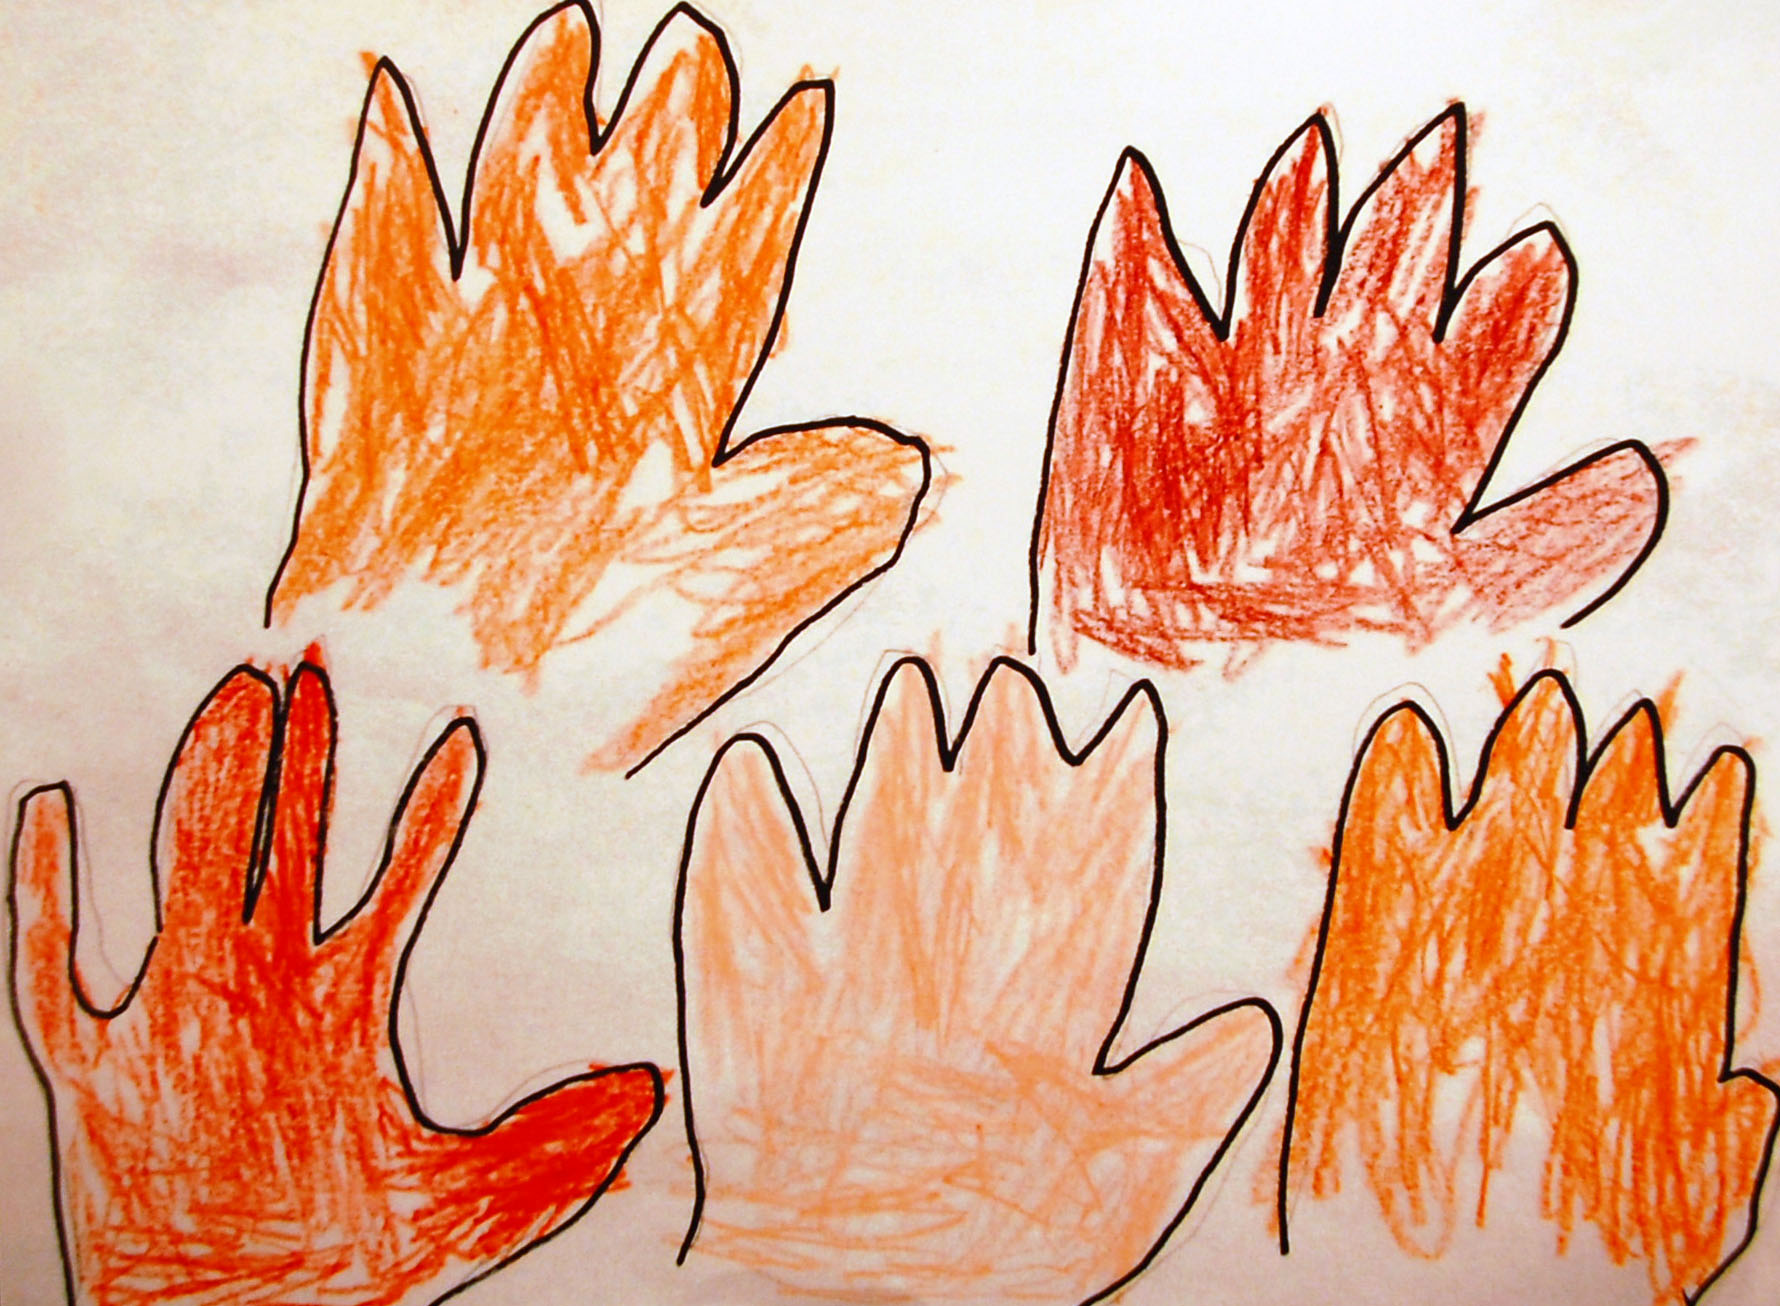 Child's crayon drawing of hands